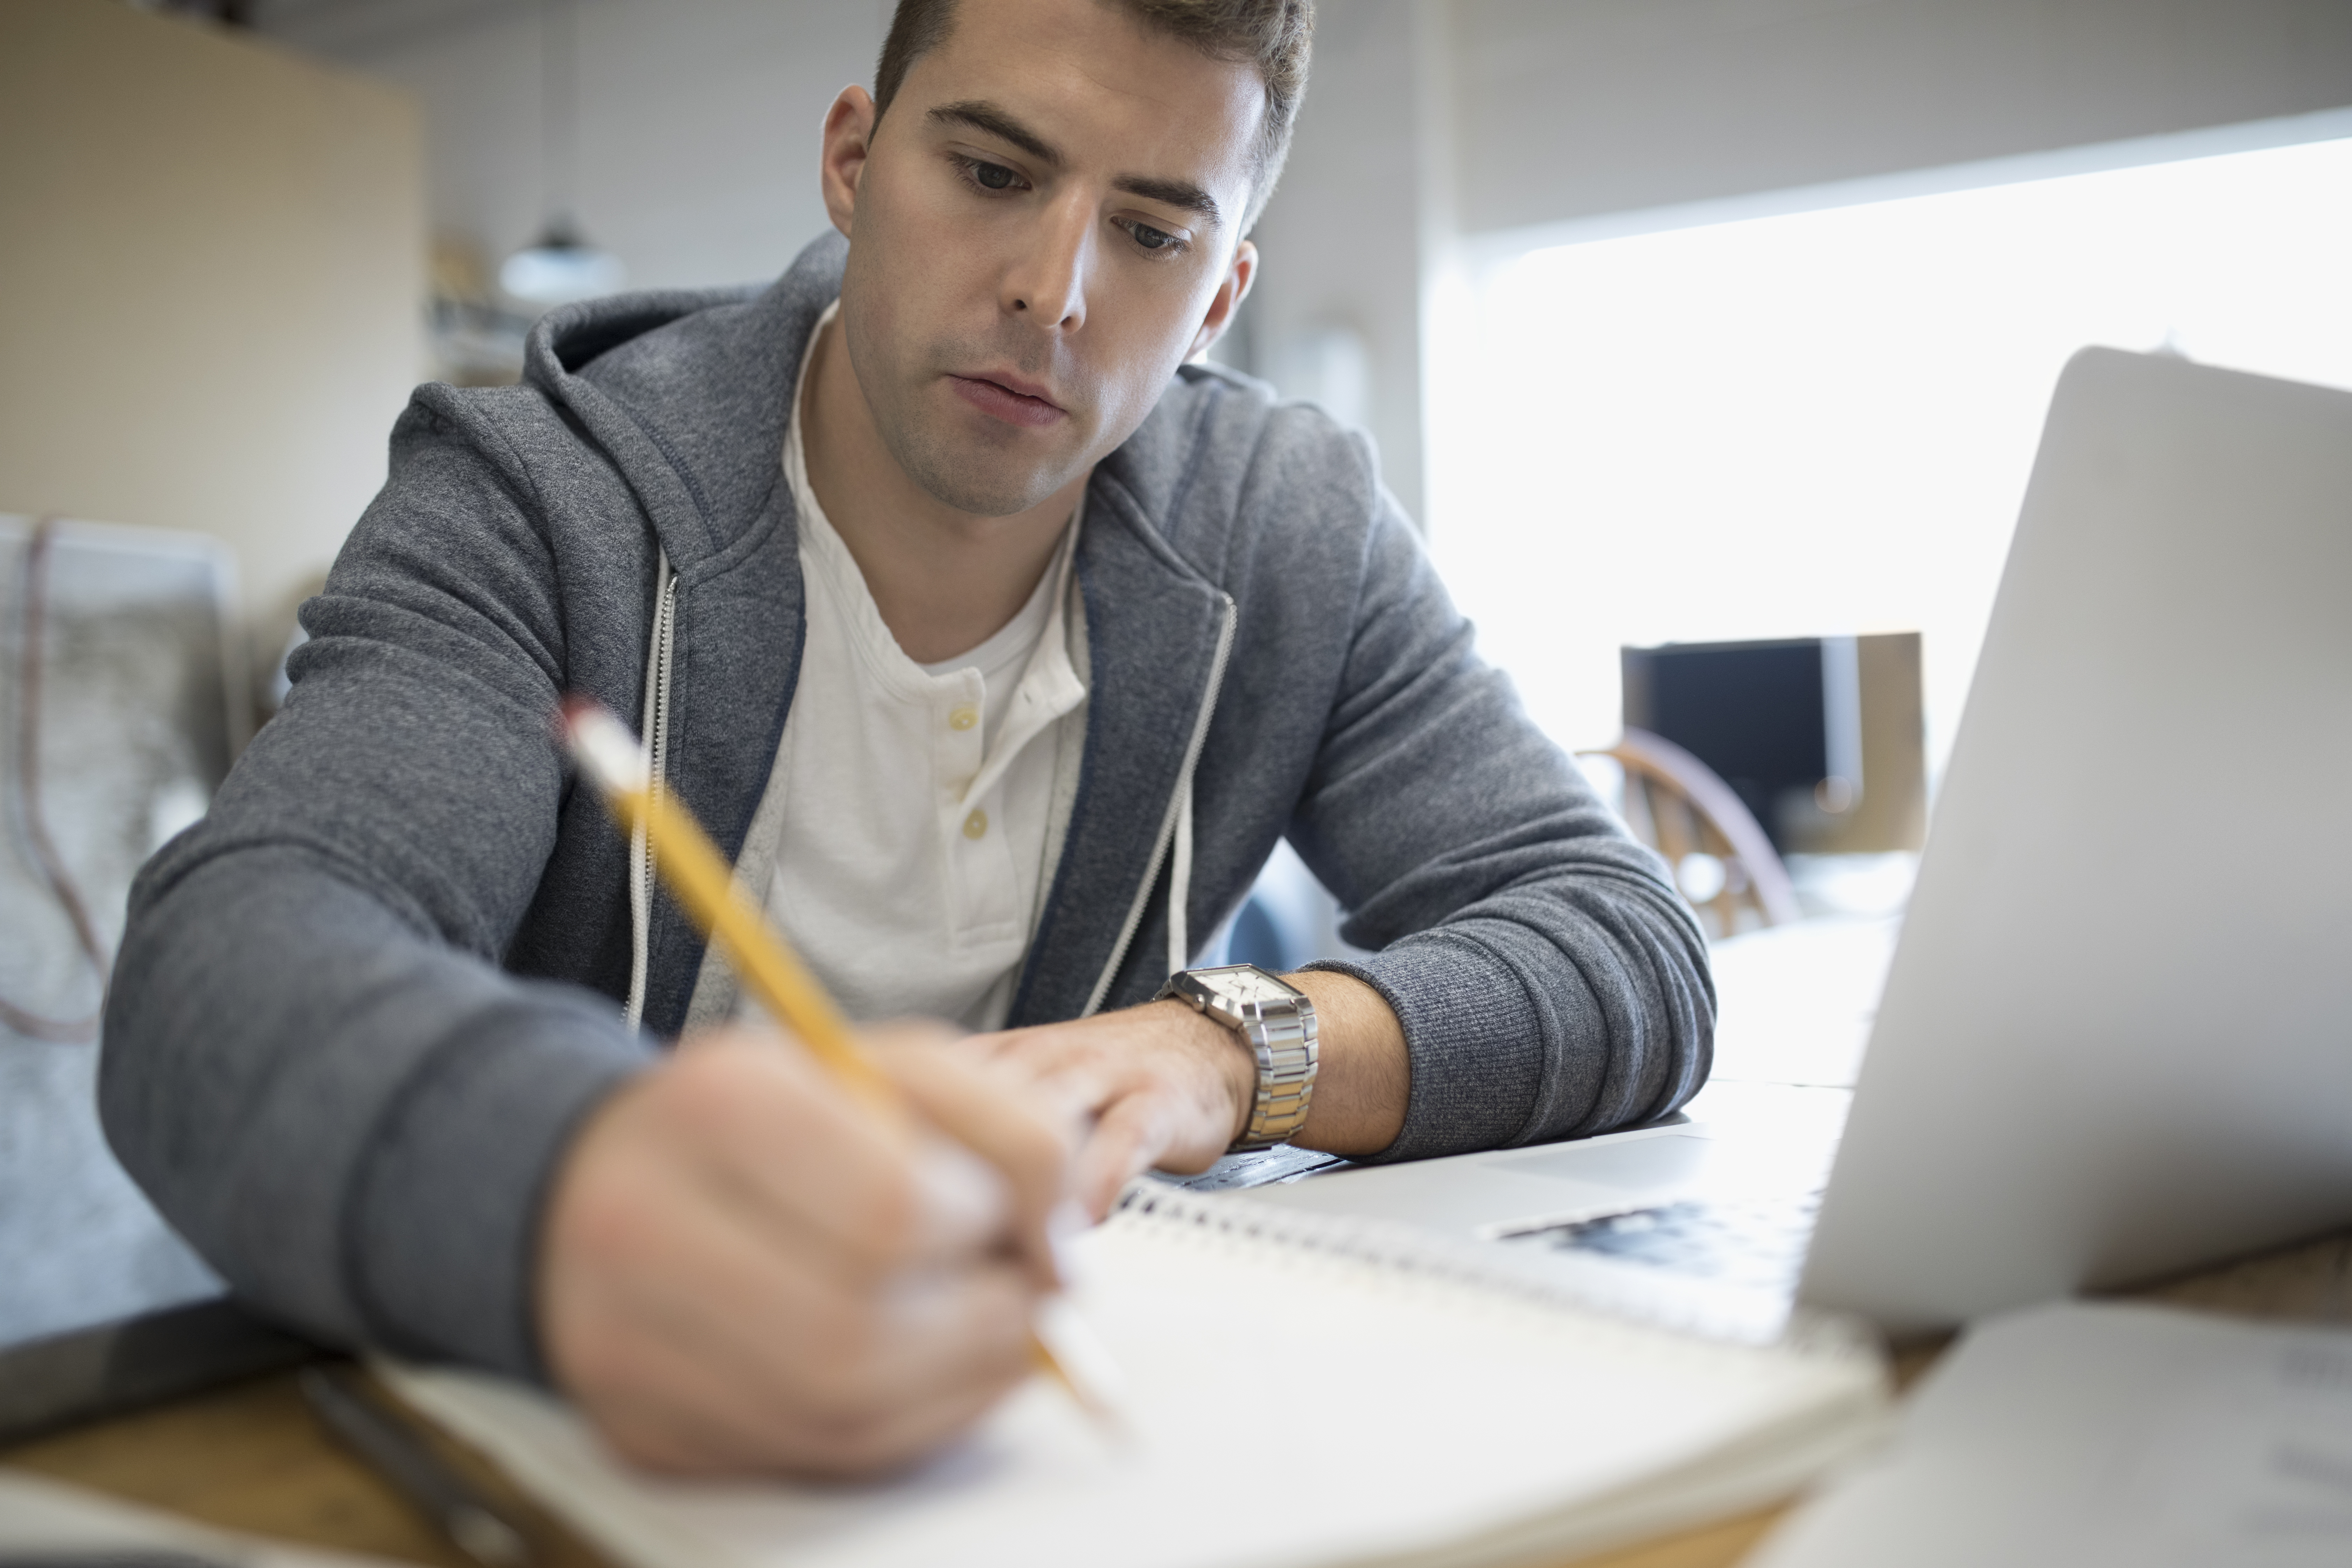 How to Write a Letter of Appeal to Retake a College Course